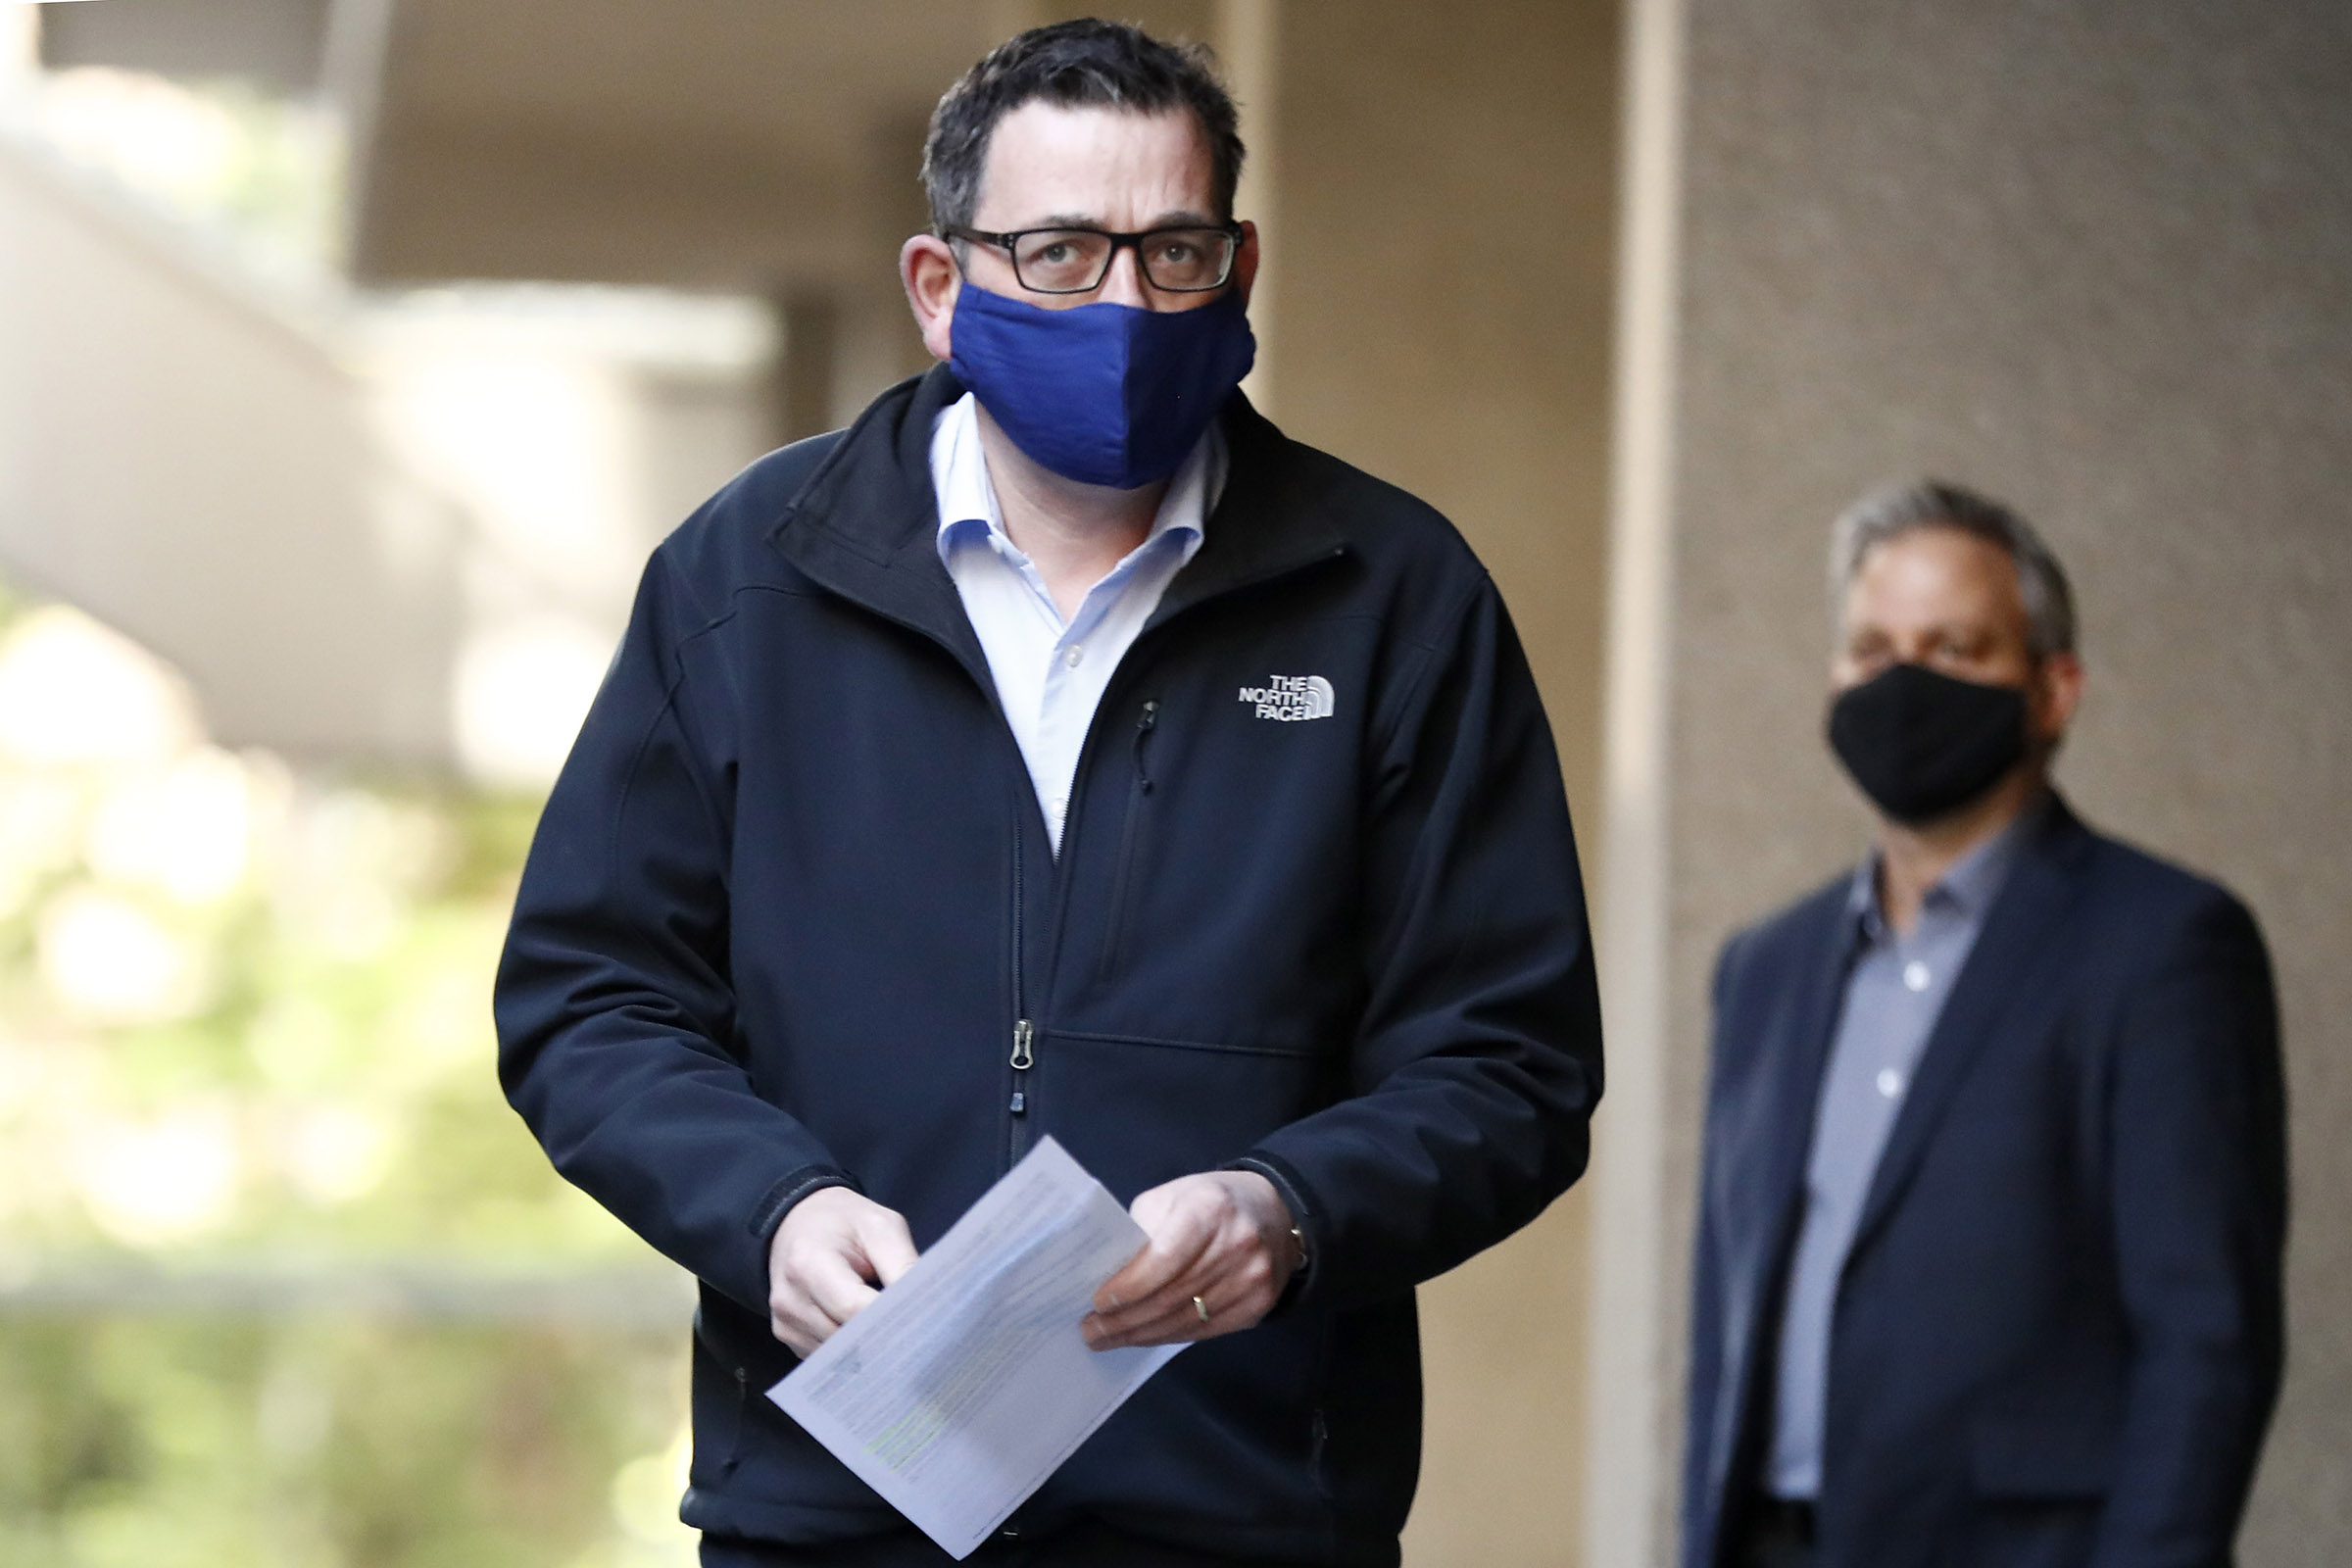 Victorian Premier Daniel Andrews wears a face mask as he walks in to the daily briefing on July 19, in Melbourne, Australia.